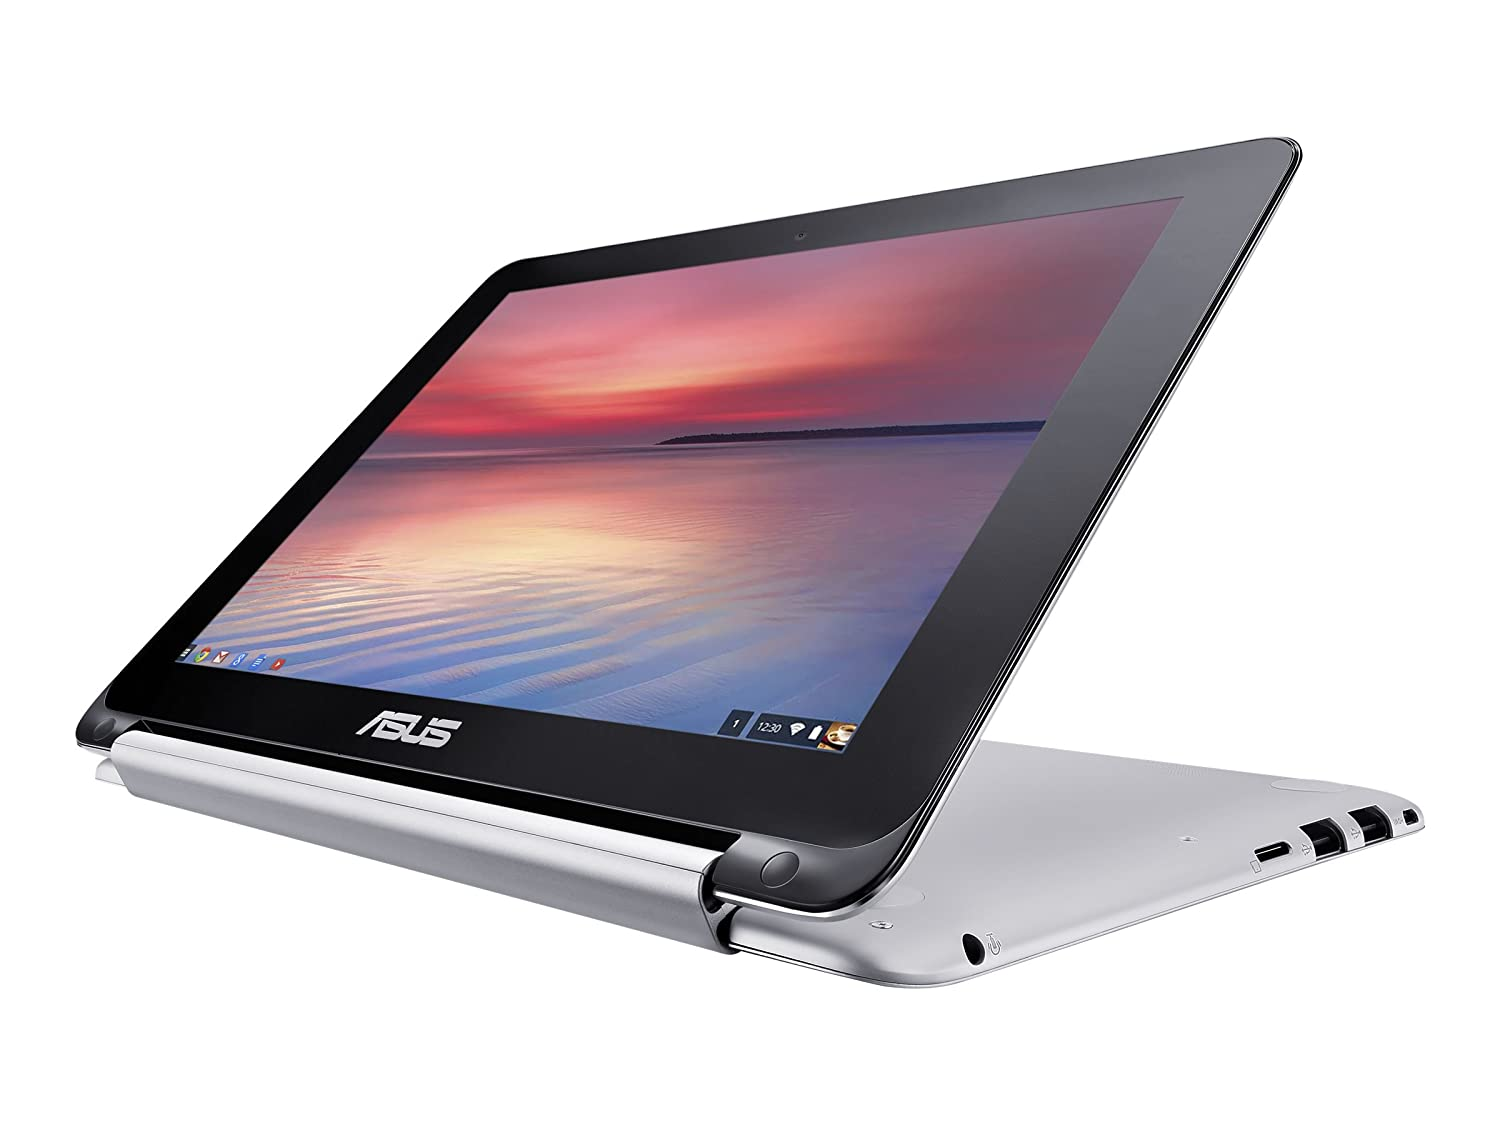 The Asus C100 is a 2-in-1 convertible Chromebook that makes a perfect fit for students or creative people.